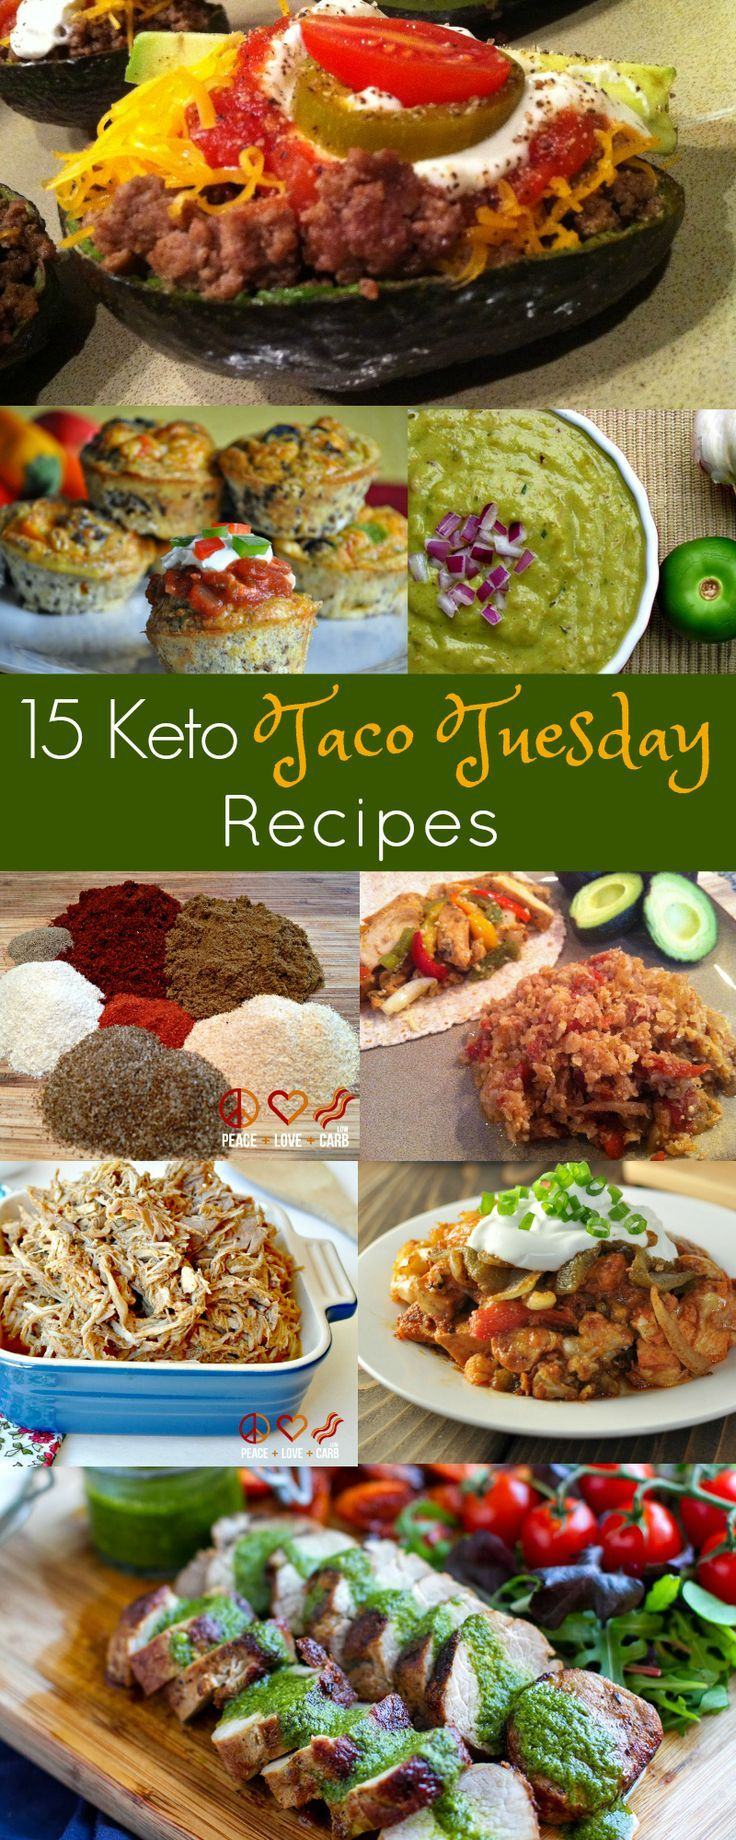 20 Low Carb Keto Taco Tuesday Recipes With Images Keto Diet